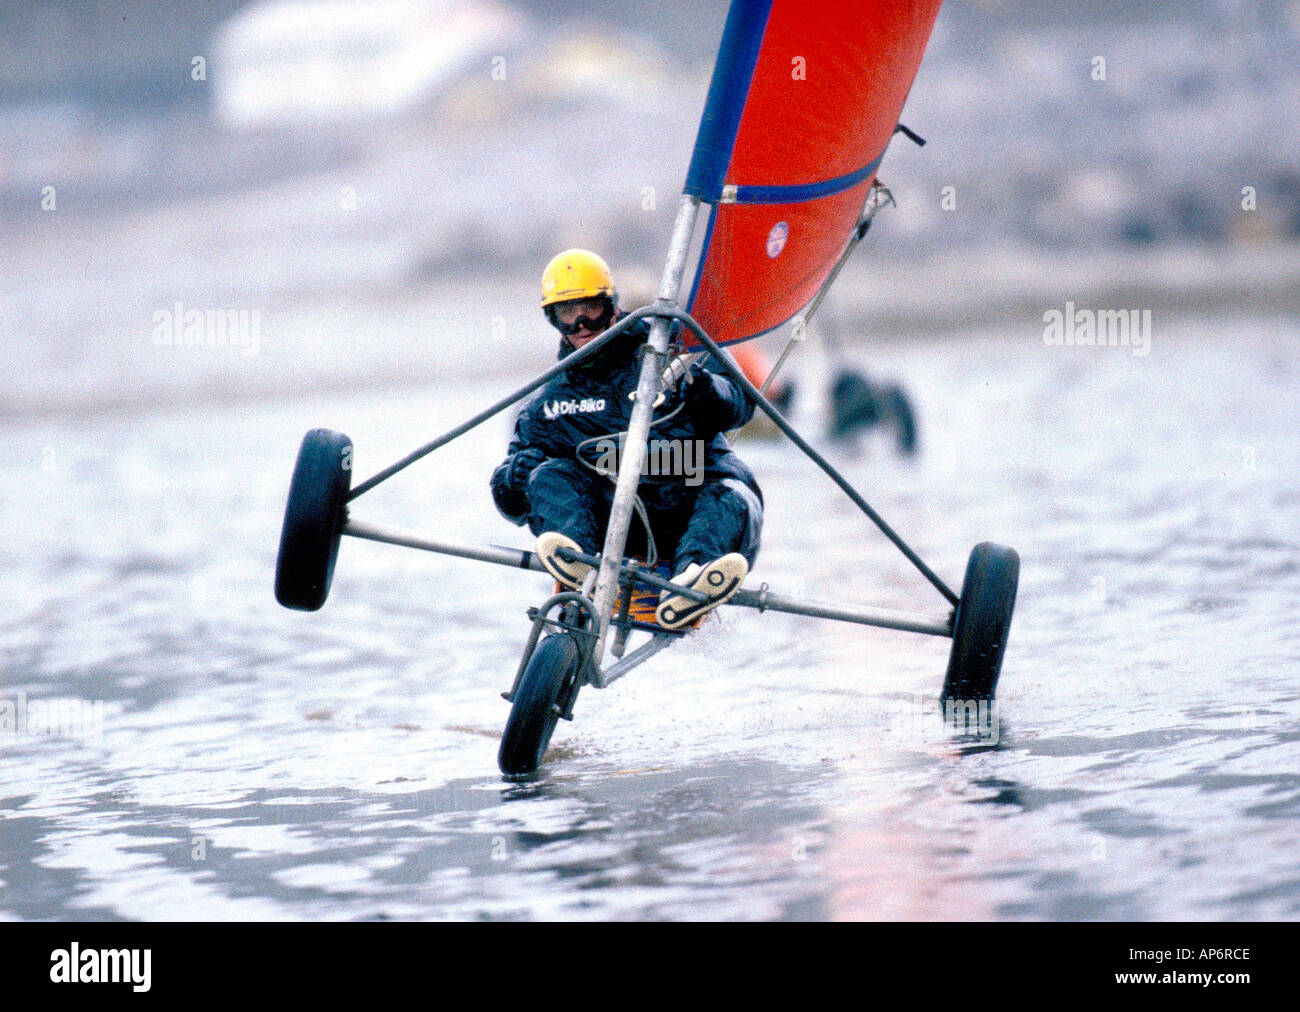 Land Yachting action - Stock Image